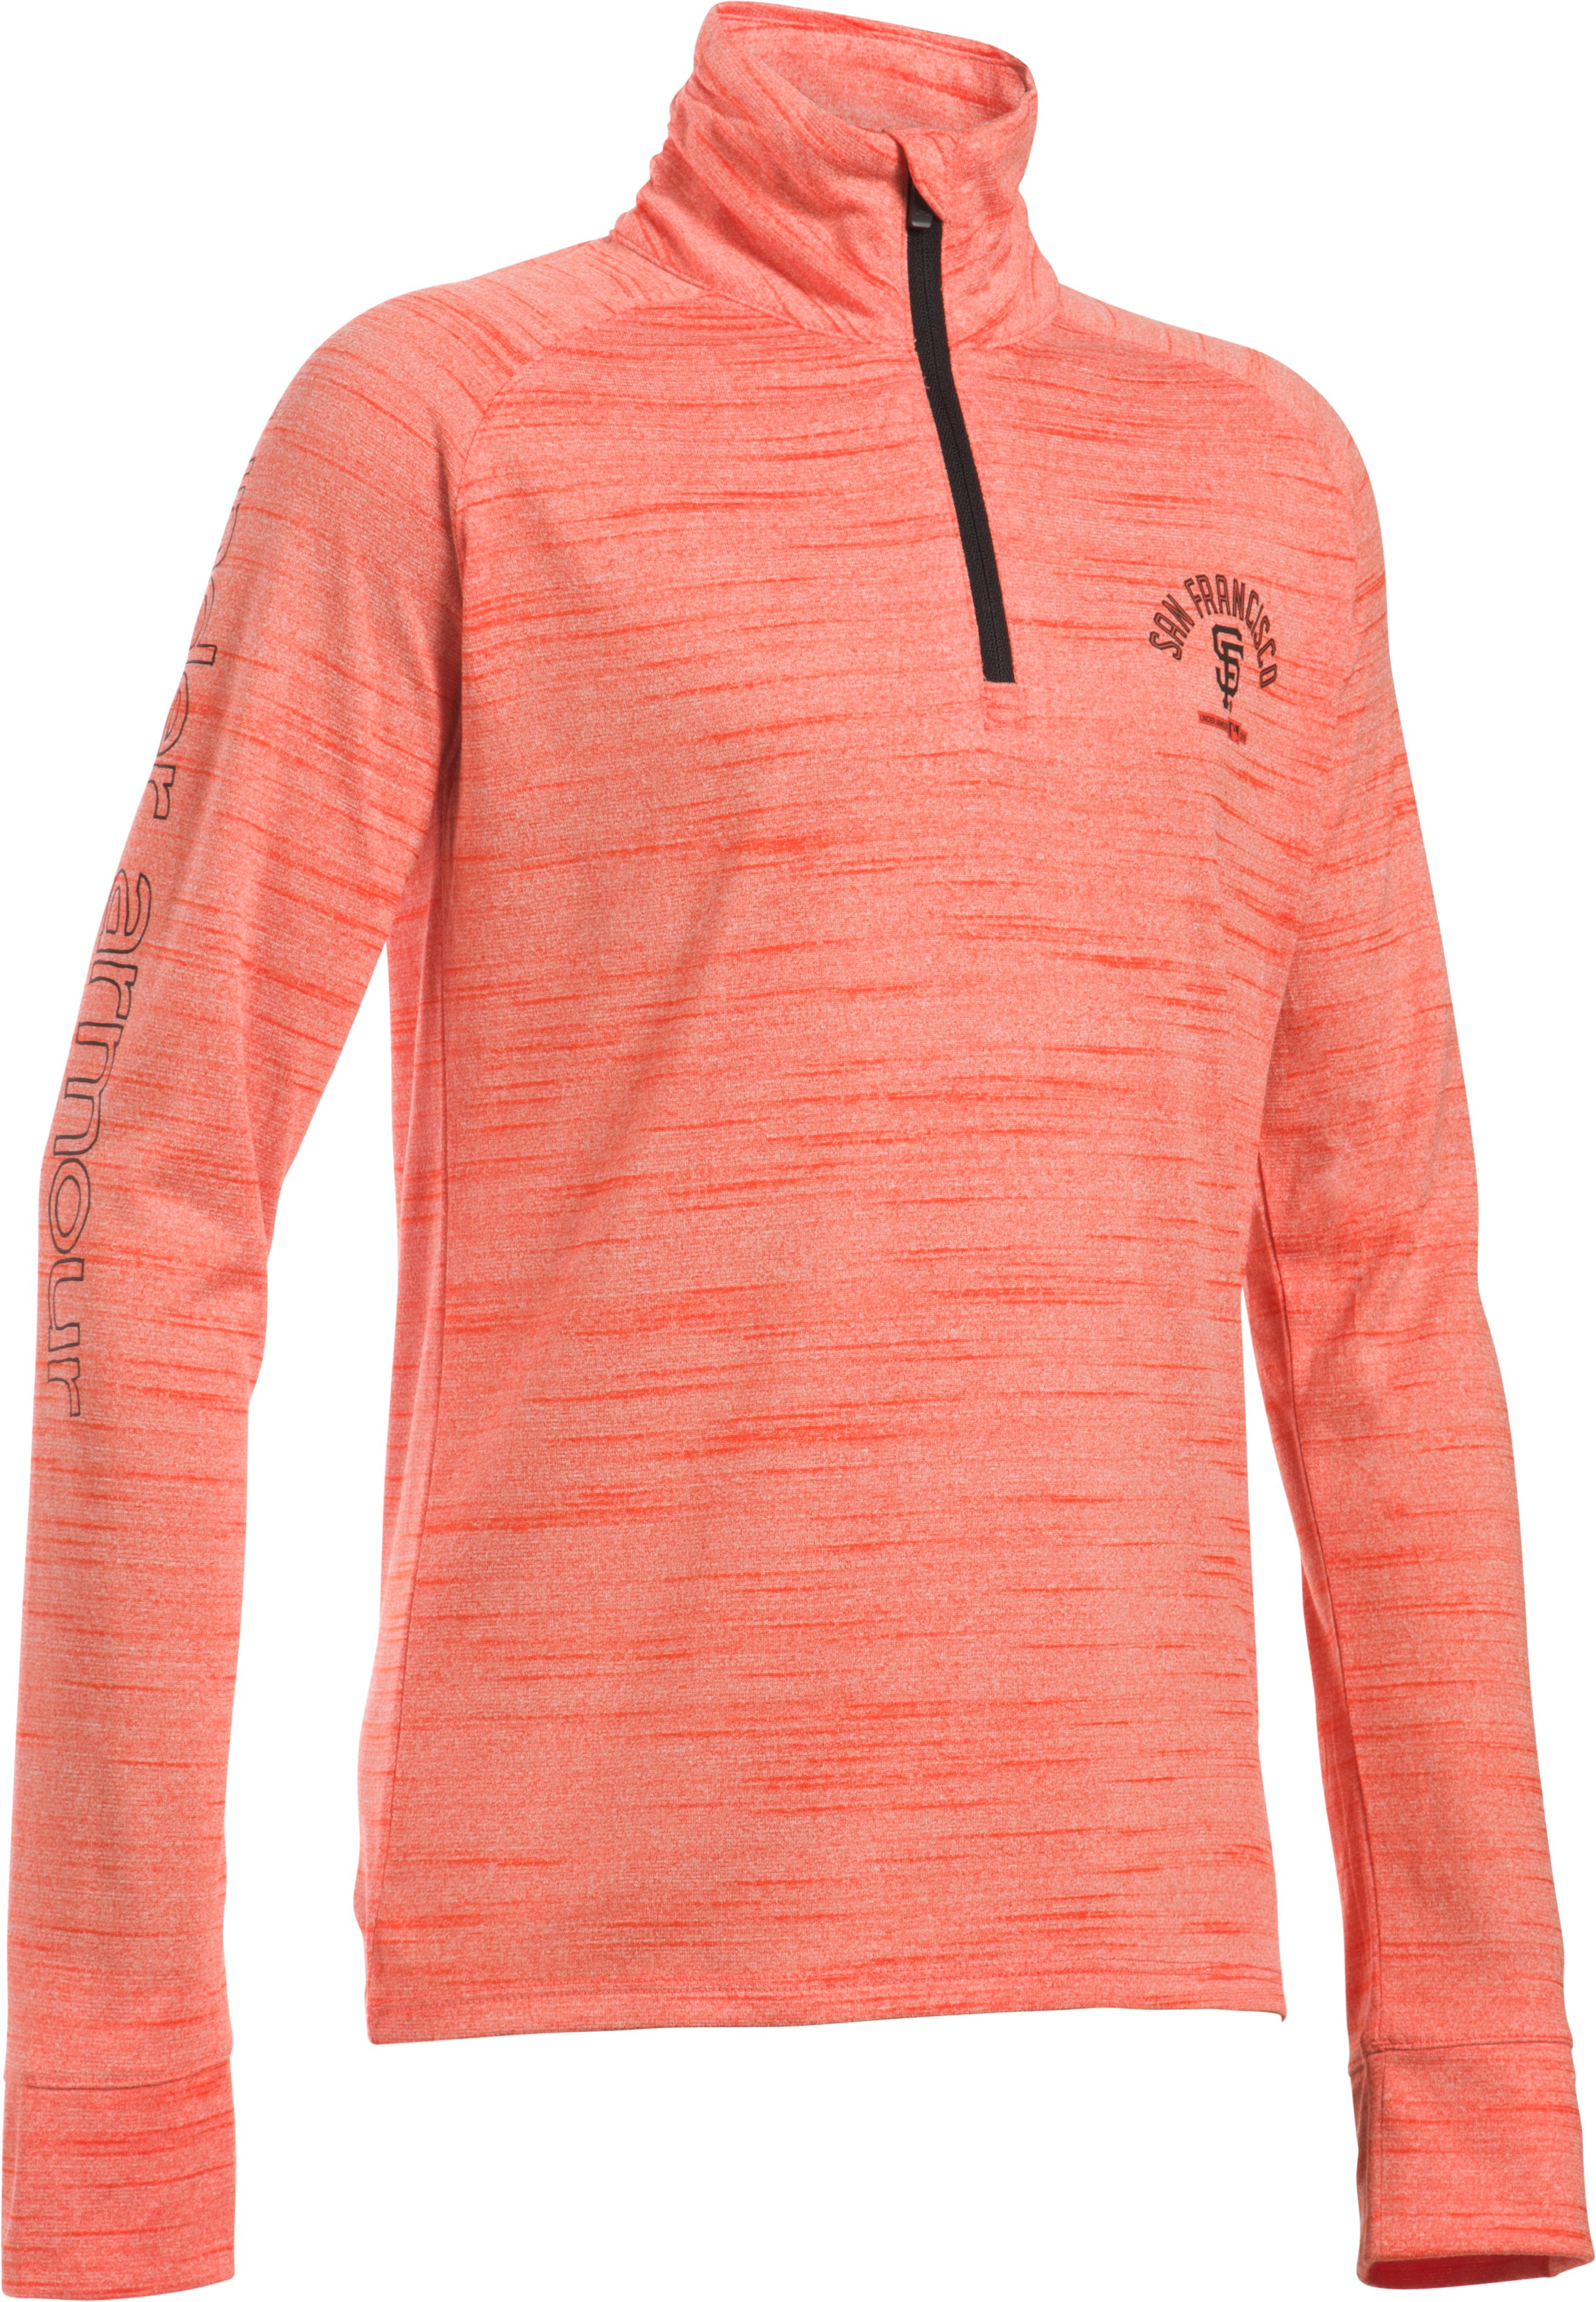 Girls' San Francisco Giants UA Tech™ 1/2 Zip, Dark Orange, undefined